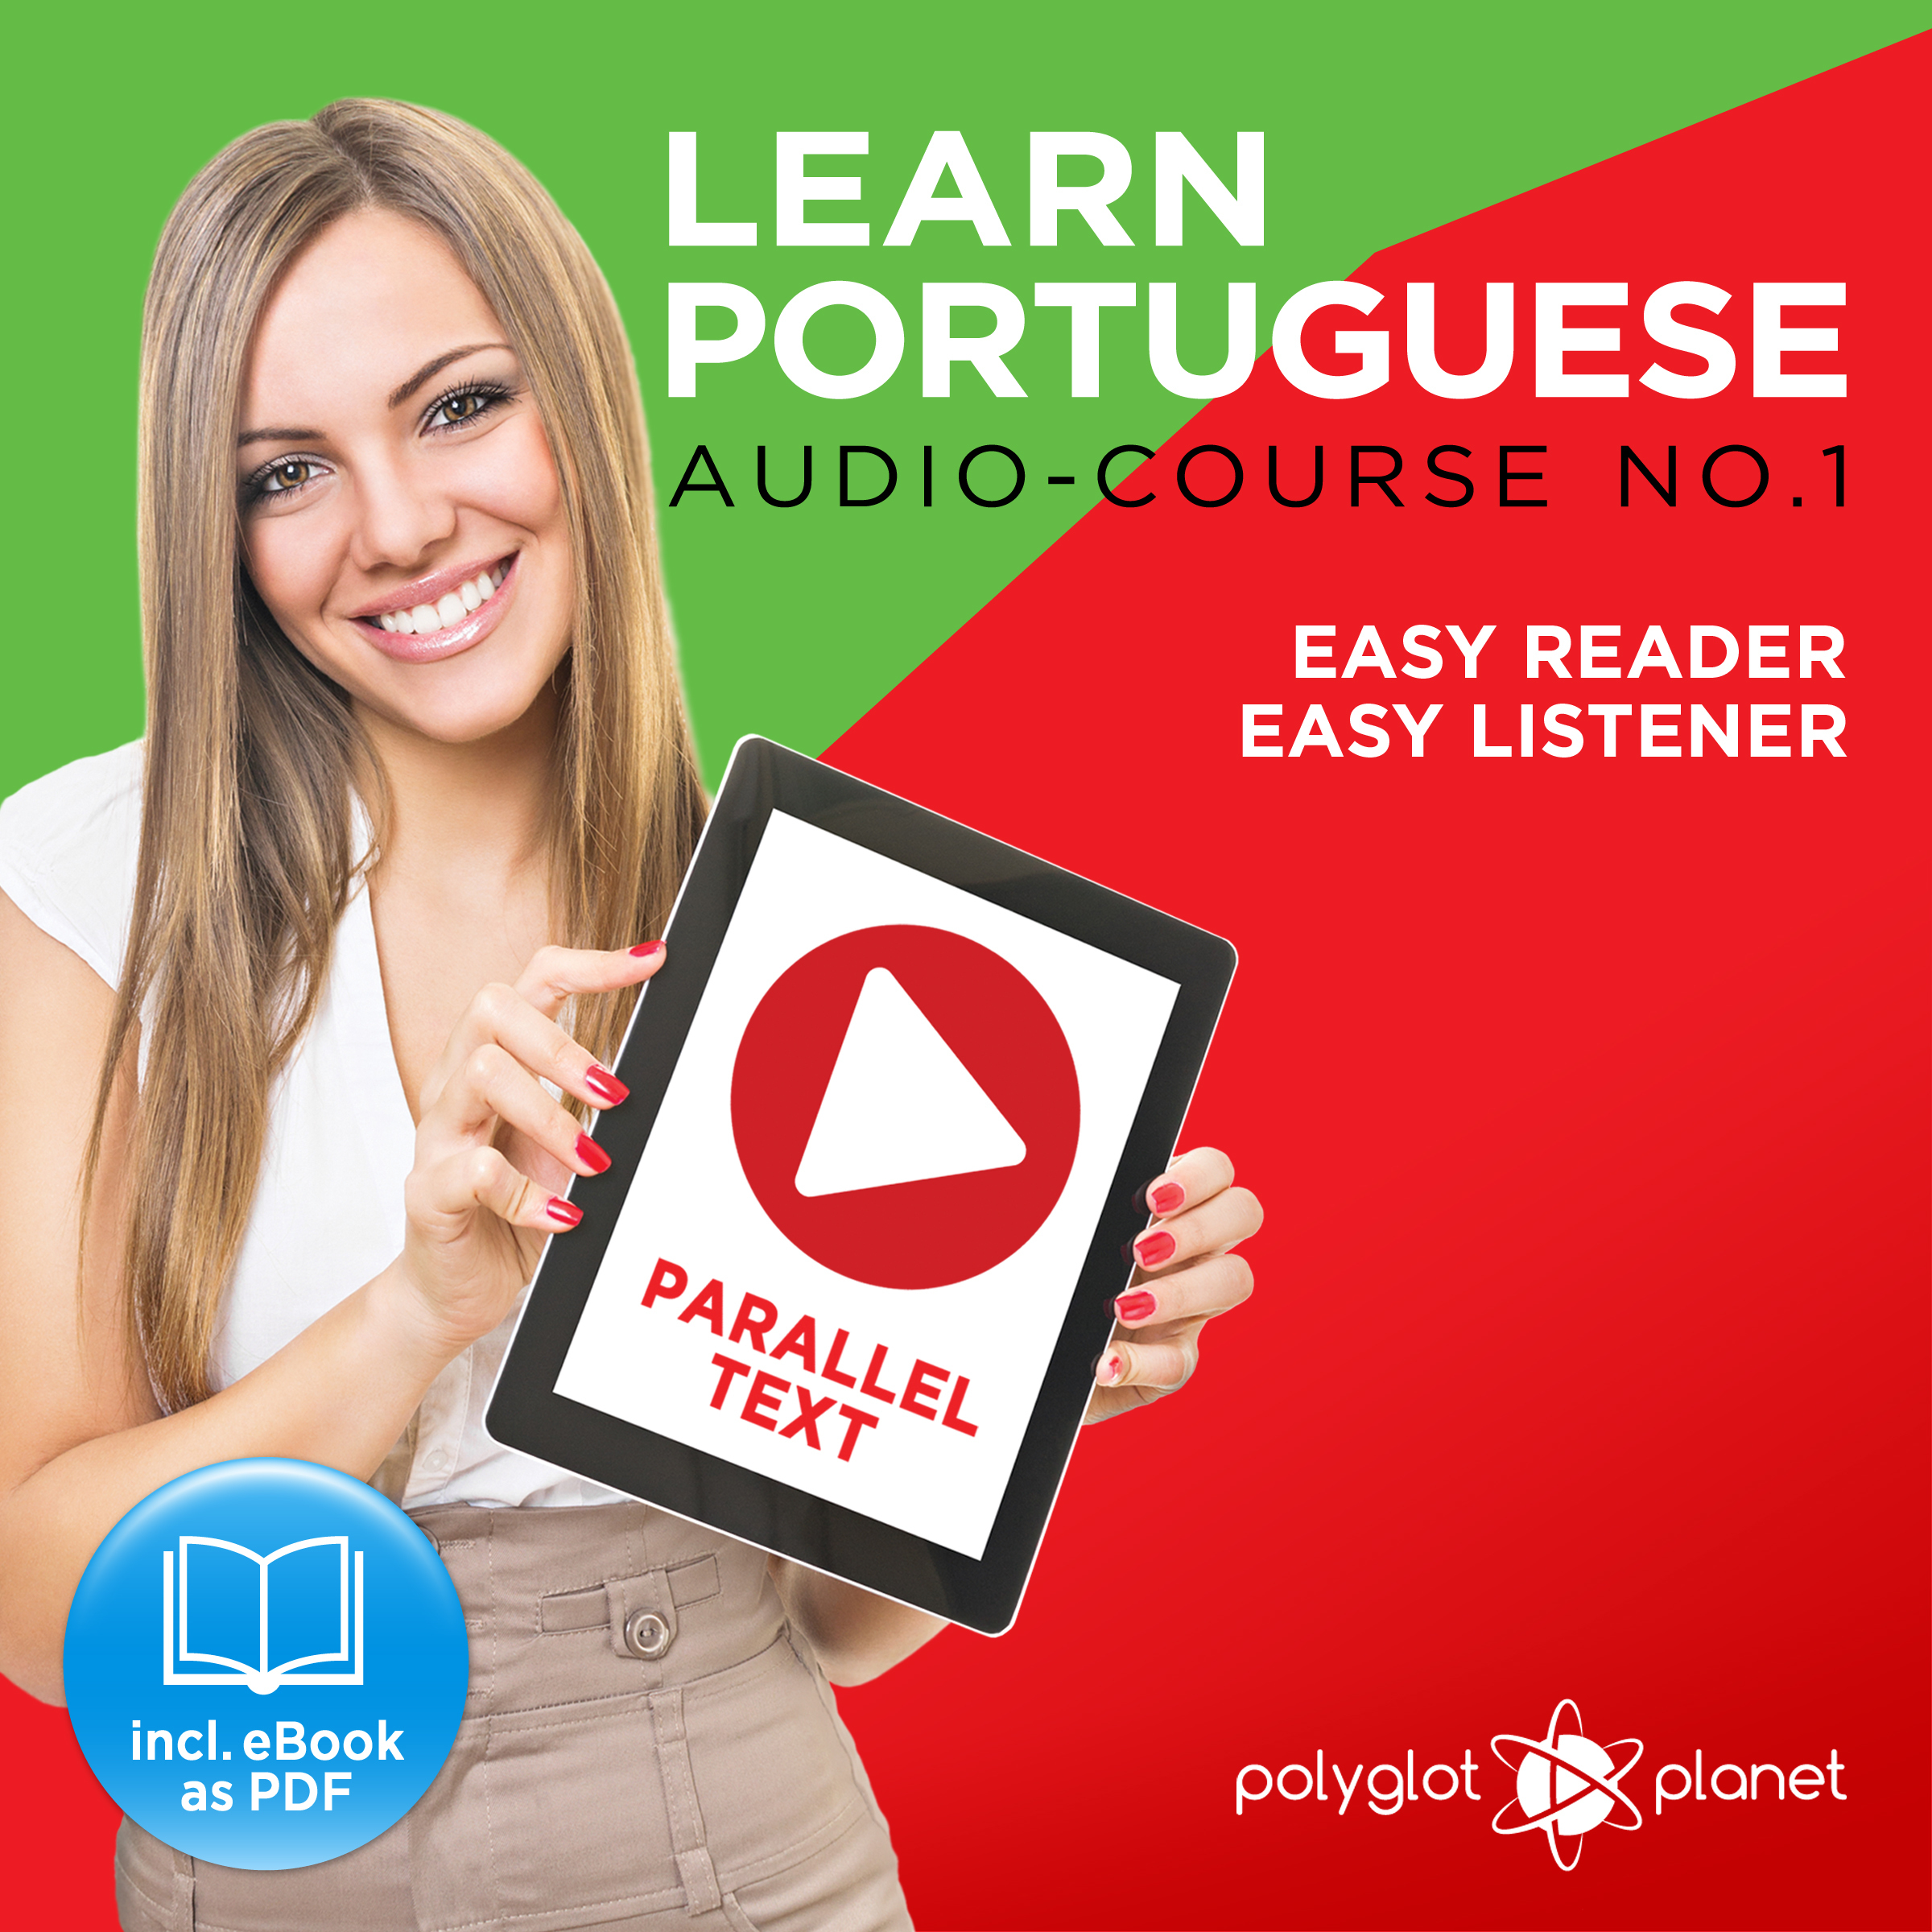 Printable Learn Portuguese - Easy Reader - Easy Listener Parallel Text: Portuguese Audio Course No. 1 - The Portuguese Easy Reader - Easy Audio Learning Course Audiobook Cover Art